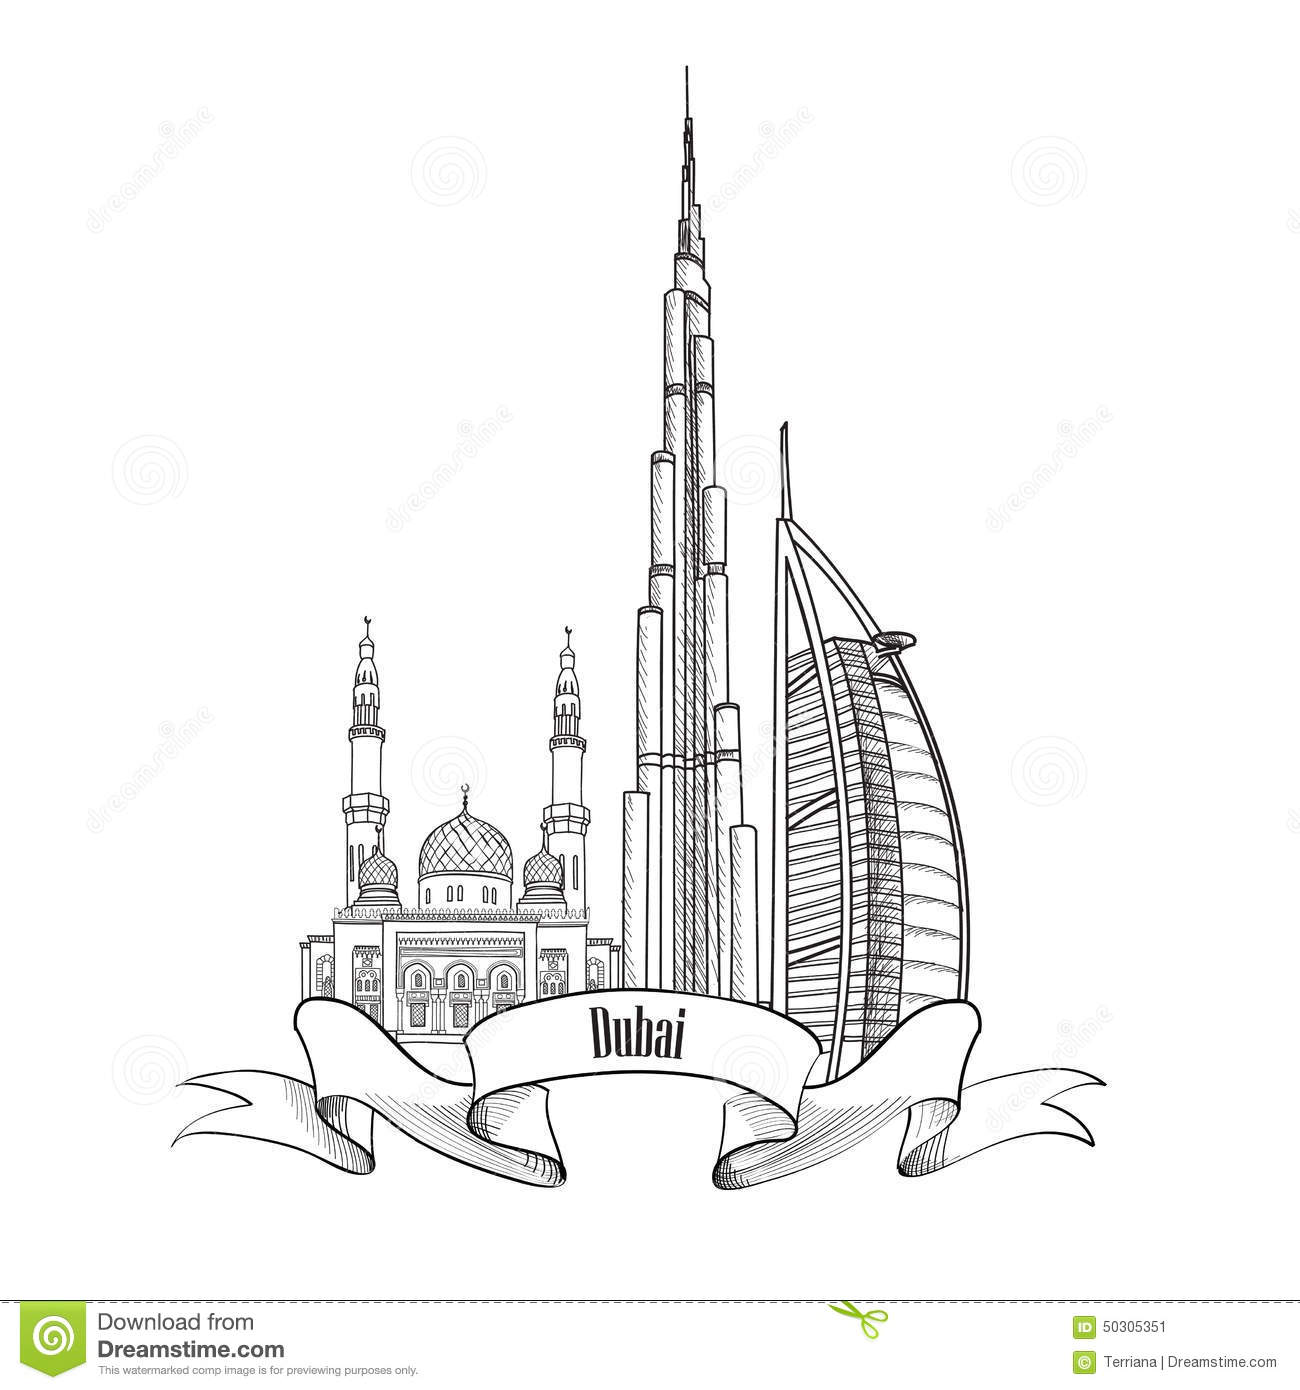 Stock Illustration Travel Uae Architectural Sign Dubai City Label Famous Buildings Sketch Symbol Landmarks Image50305351 additionally Christian cross variants as well Depressing Drawings further Making The Most Of Summertime additionally Statue Of Liberty Coloring Pages. on city illustration